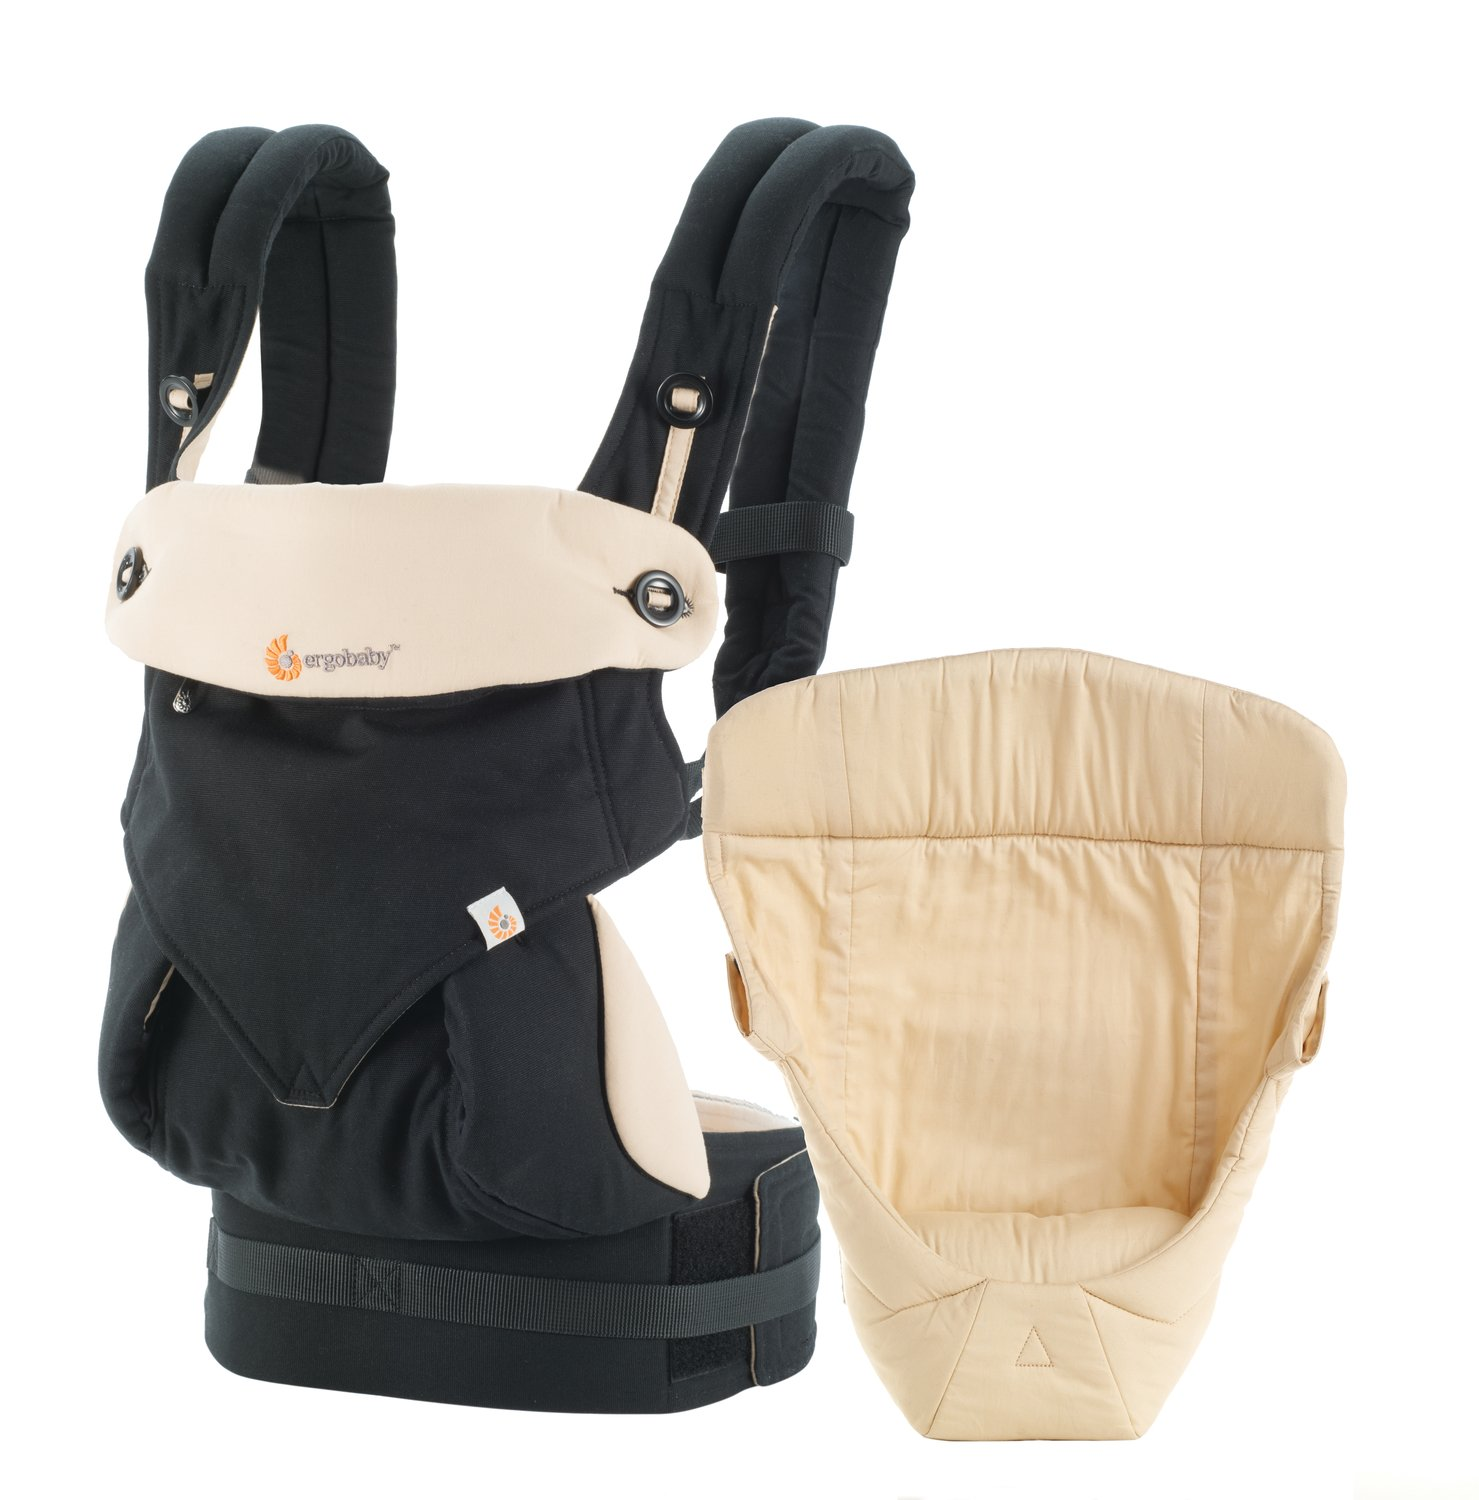 Ergobaby Bundle - 2 Items: Black/Camel All Carry Position Award Winning 360 Baby Carrier and Easy Snug Infant Insert, Natural BCII360ABKCMV3